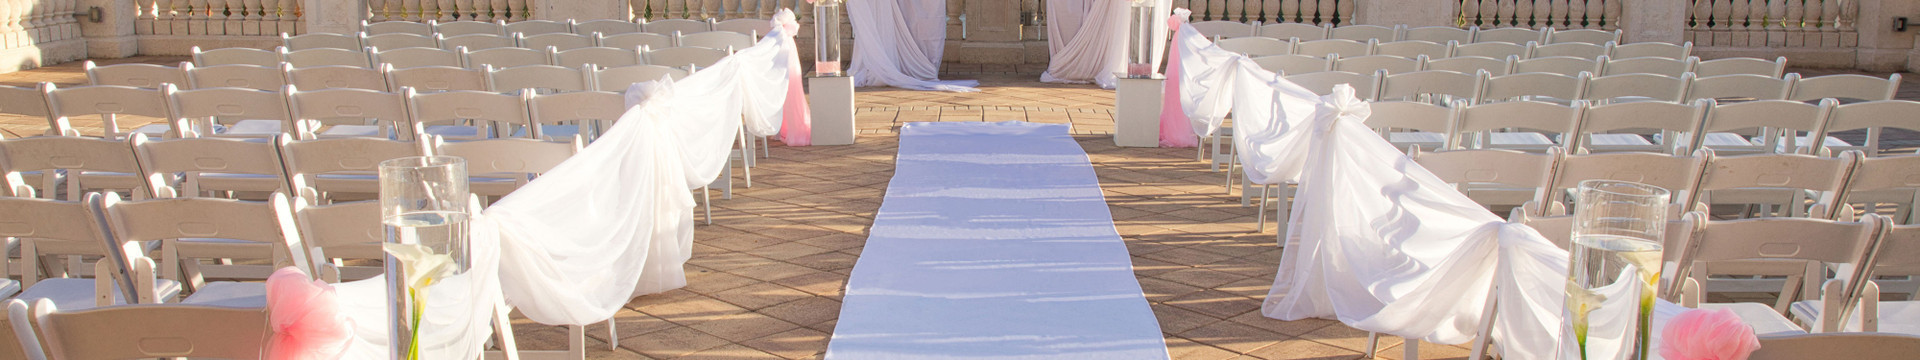 Outdoor Kissimmee Weddings - Town Center Balcony wedding ceremony setting